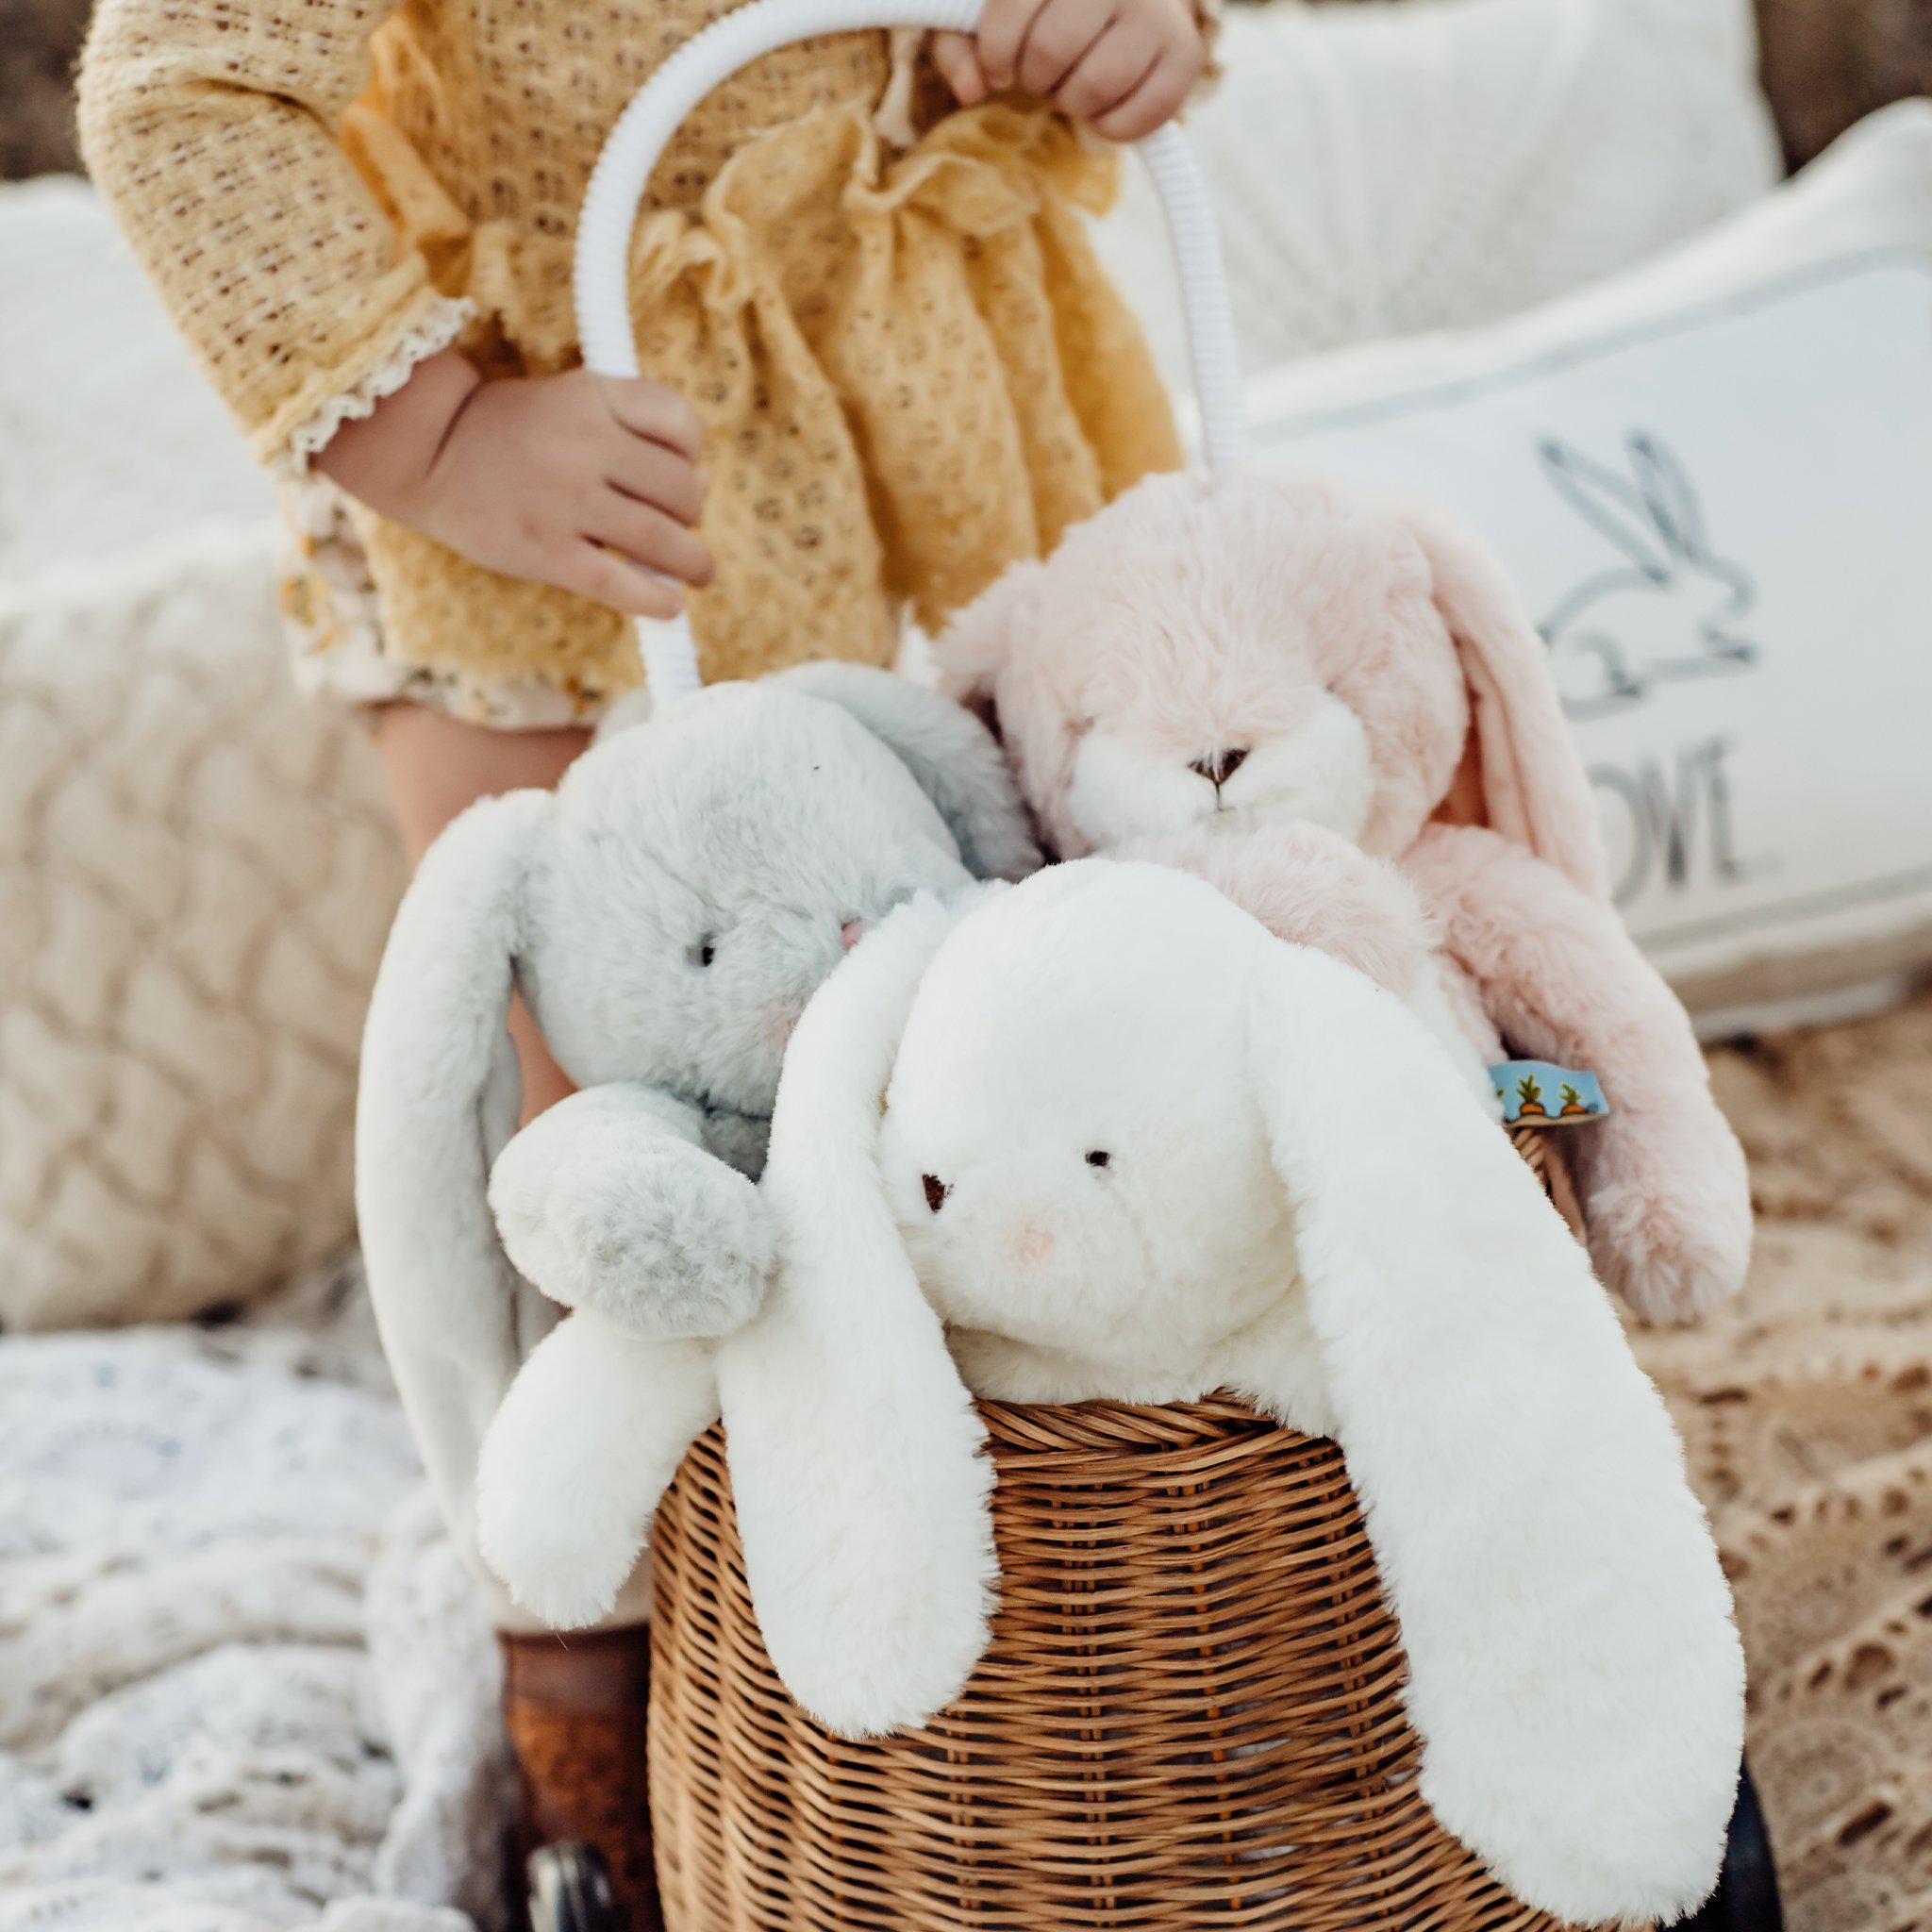 A bunch of plush bunnies pulled on a cart by a toddler